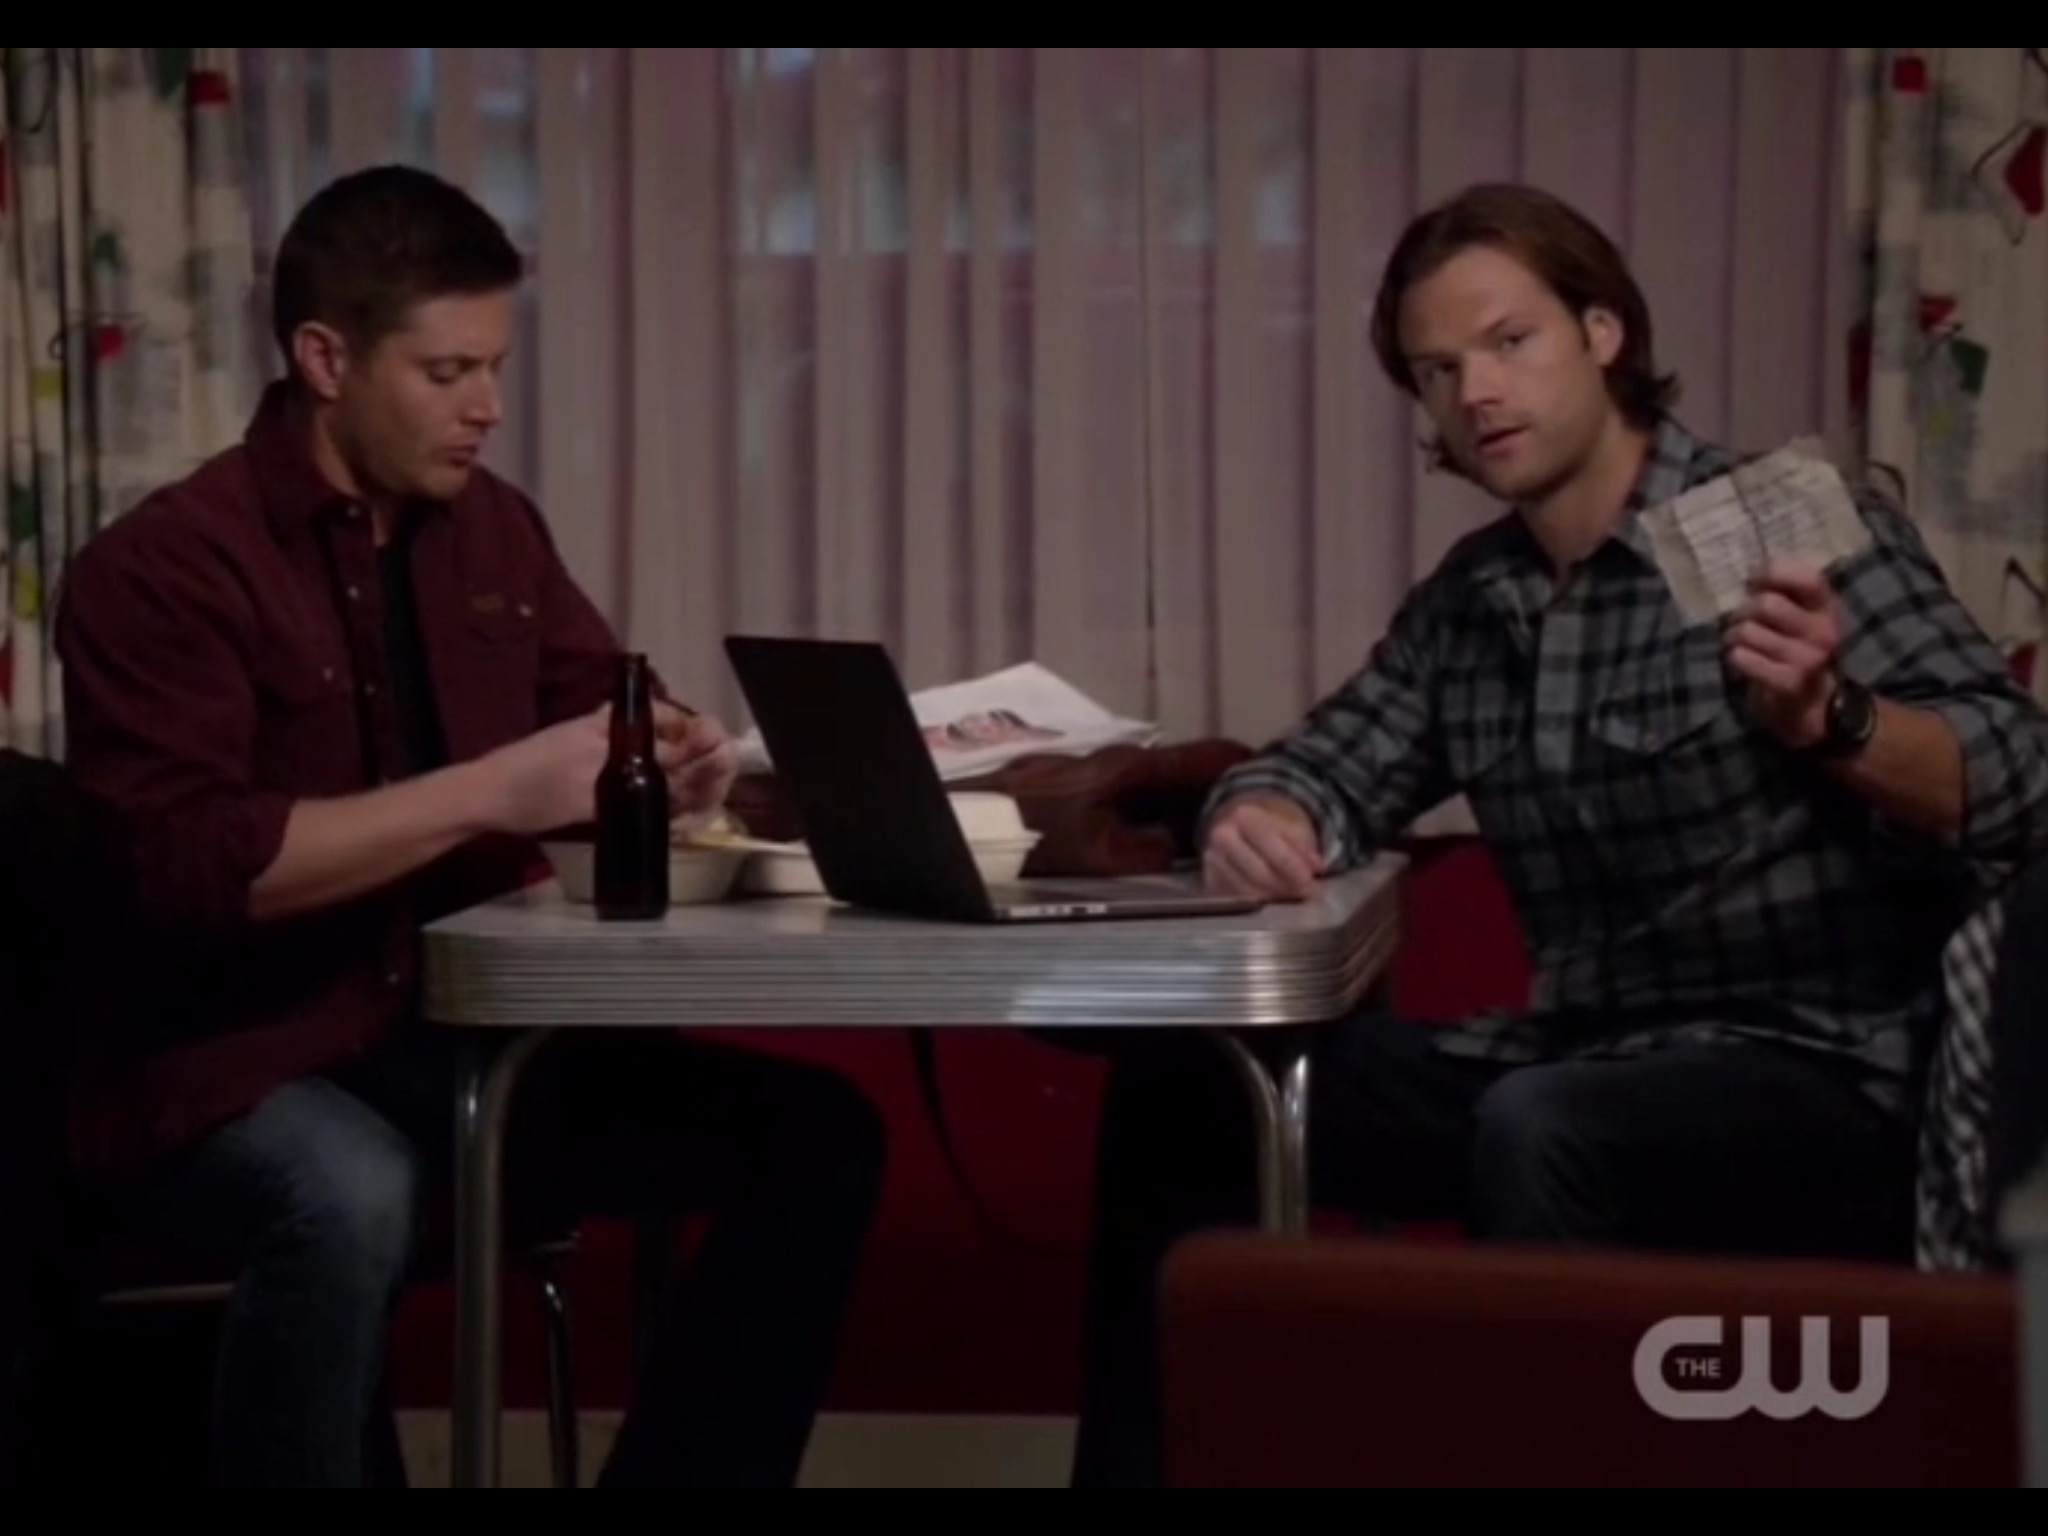 OMG They're Talking! Supernatural 'Love Hurts' – Fangasm